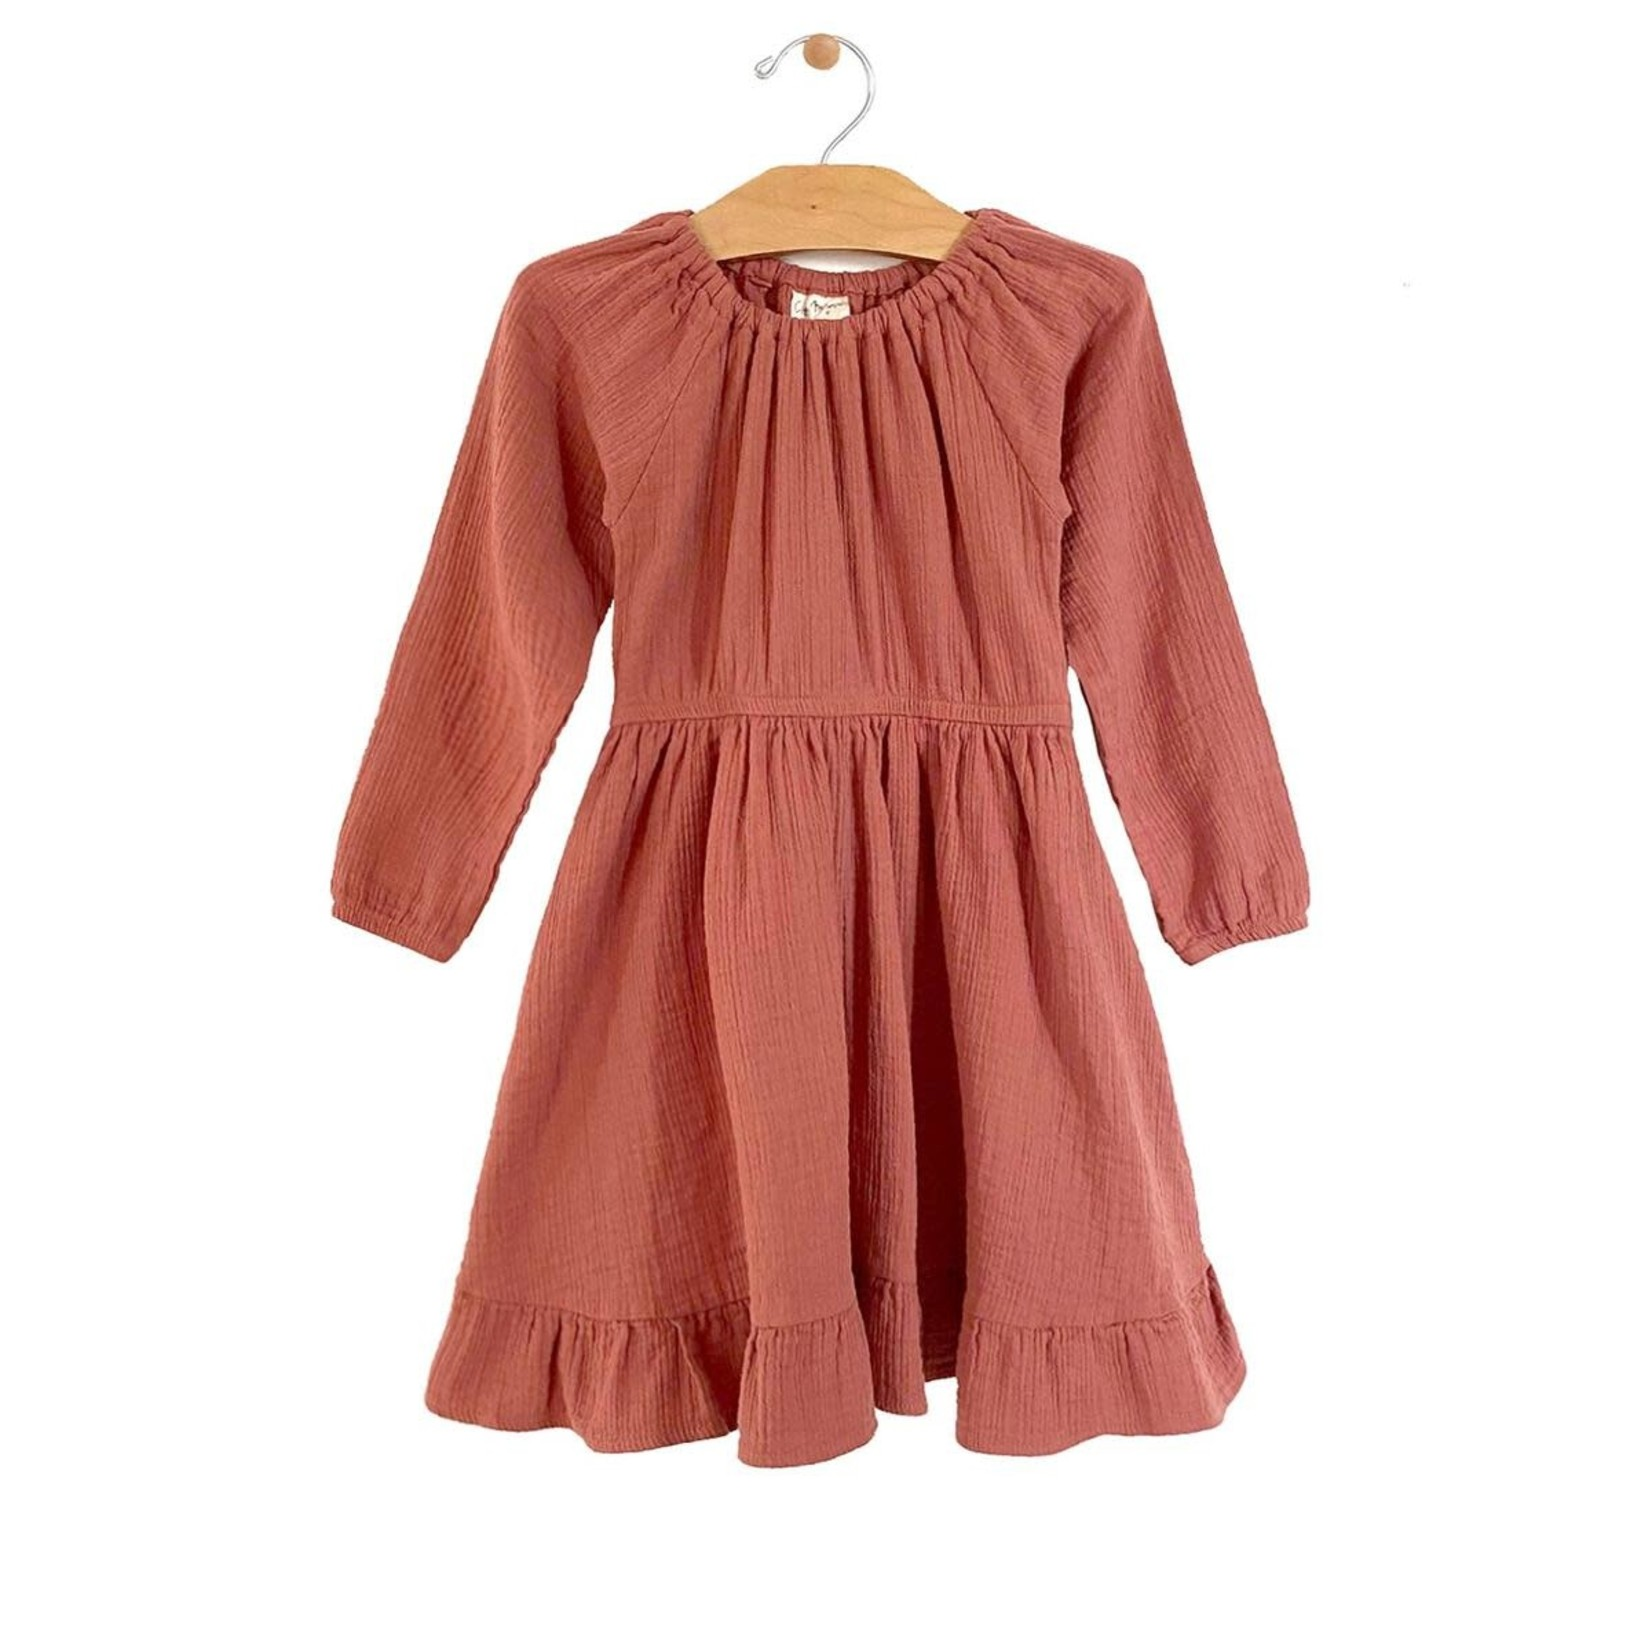 City Mouse Gathered Dress - Ember